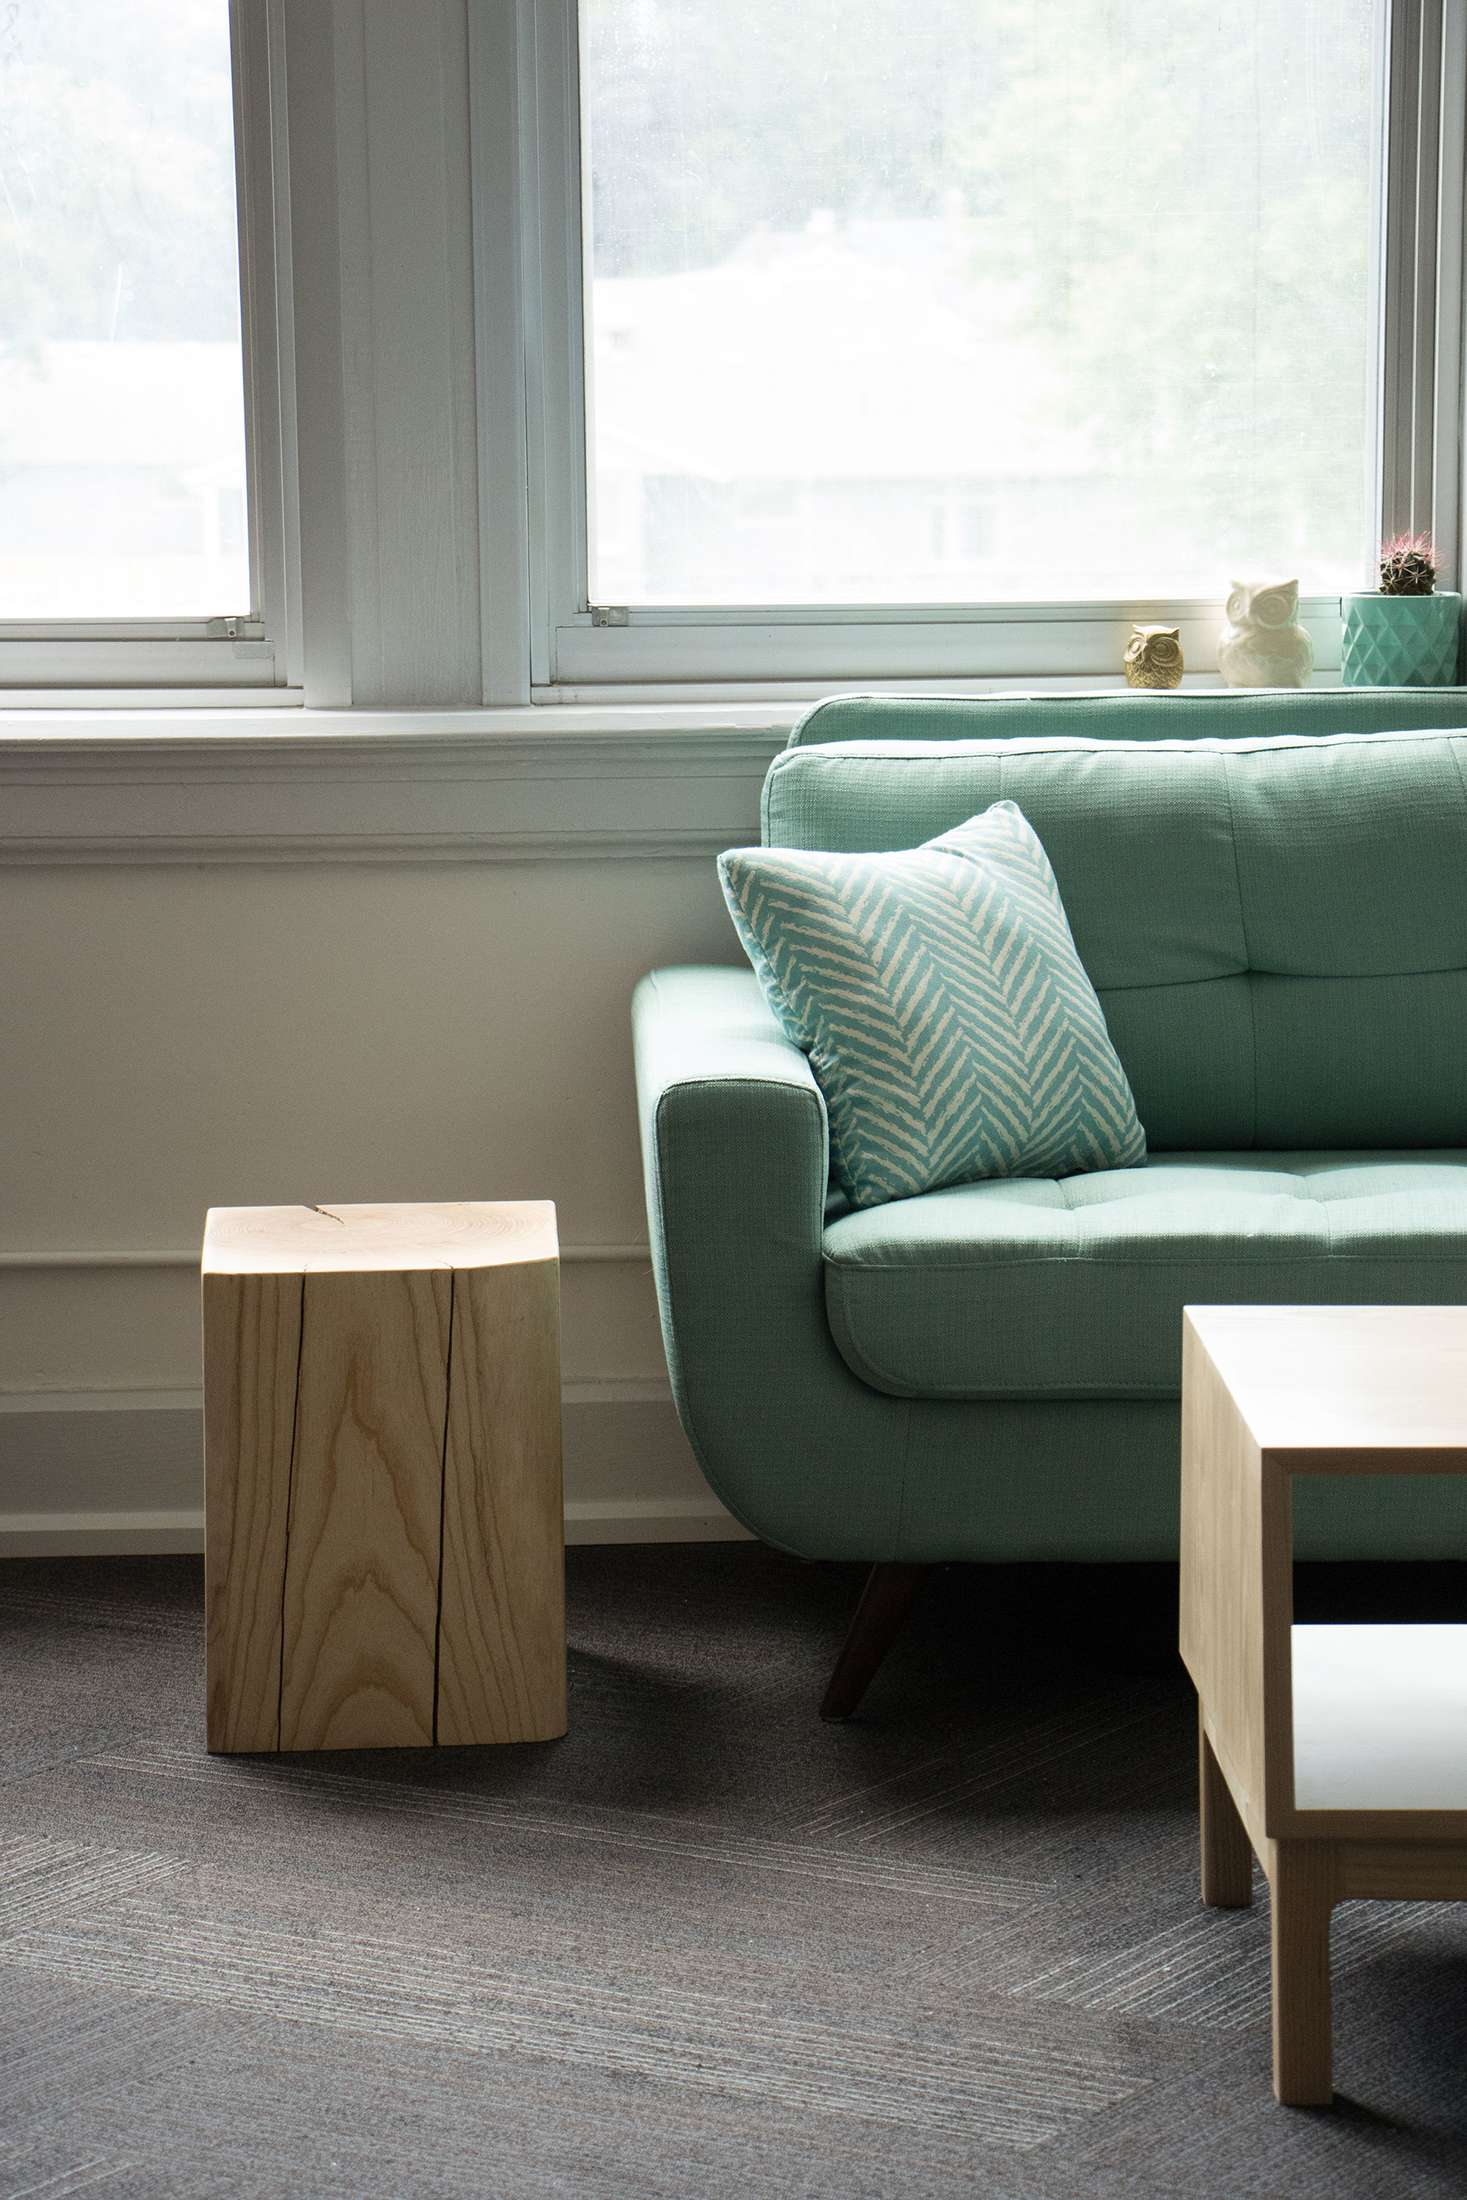 White ash timber cube side table.